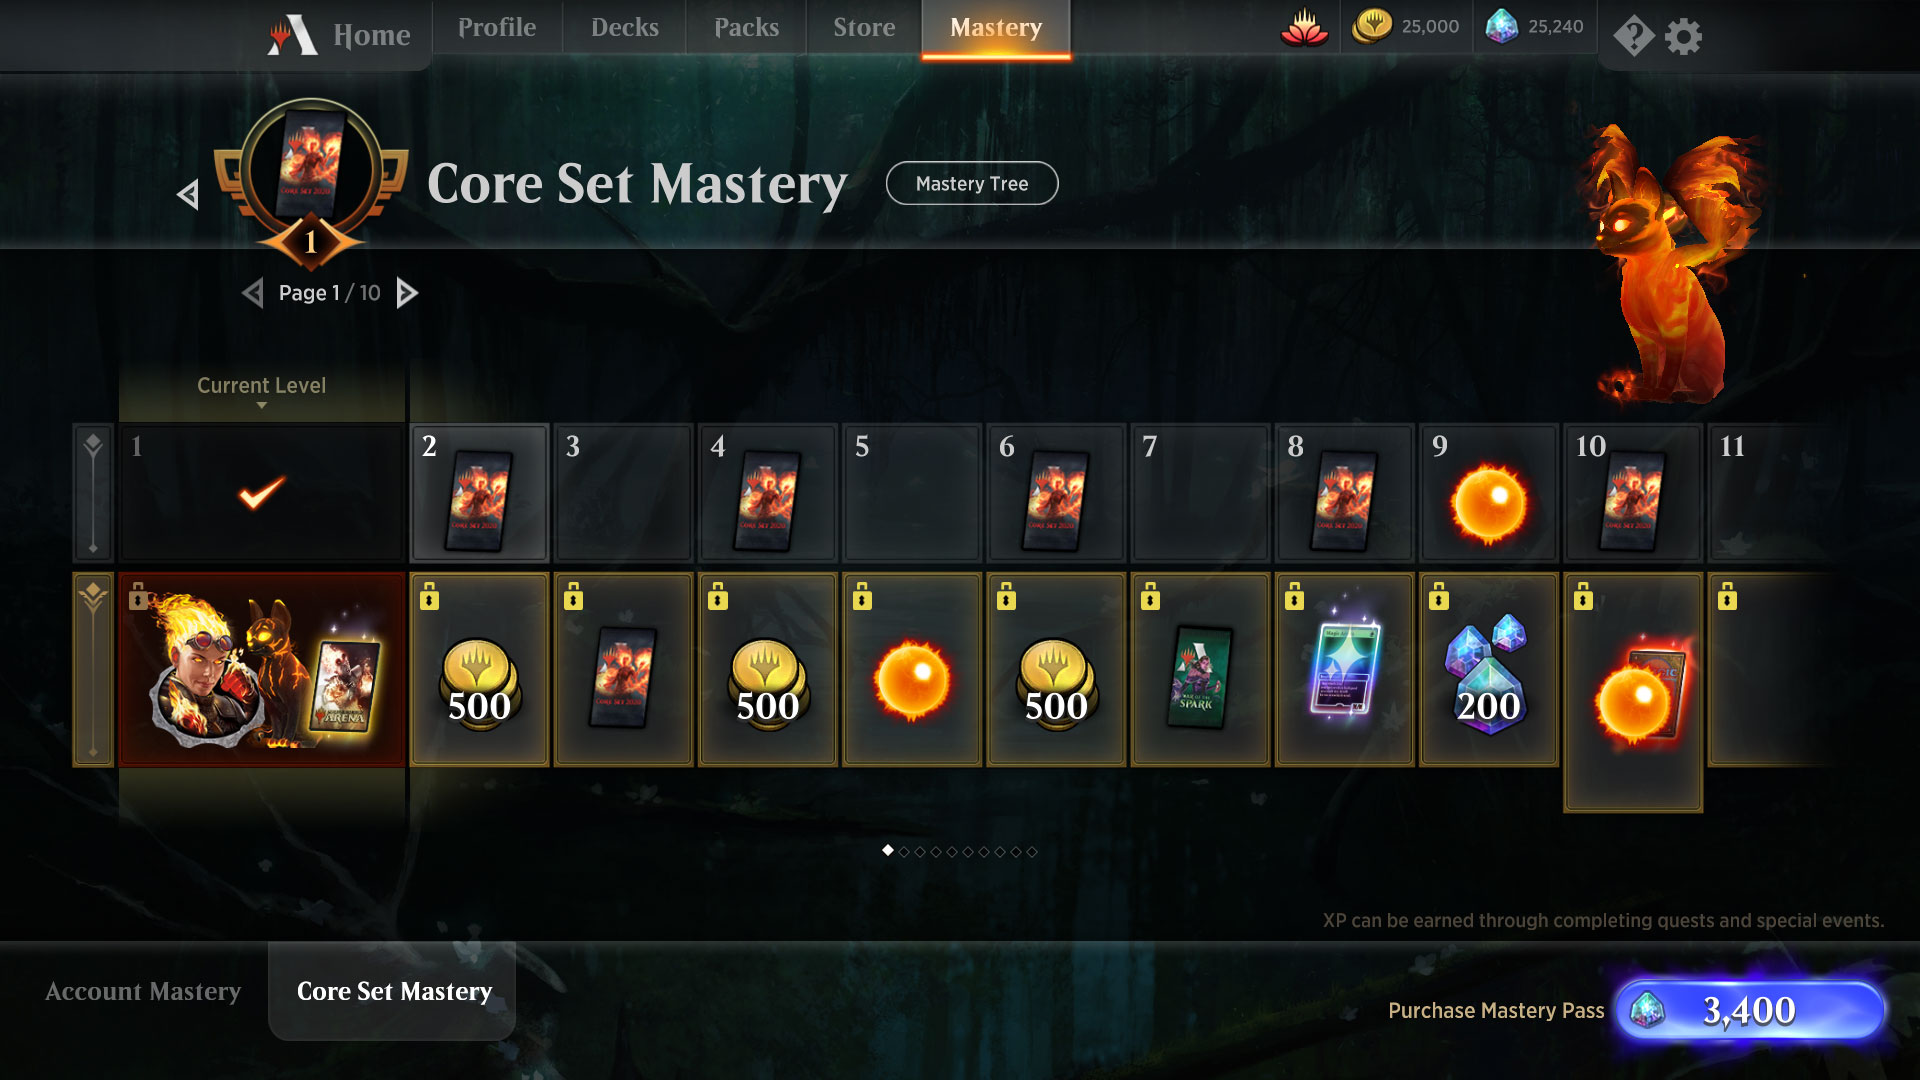 Is It Worth It to Buy a Mastery Pass on Magic Arena?